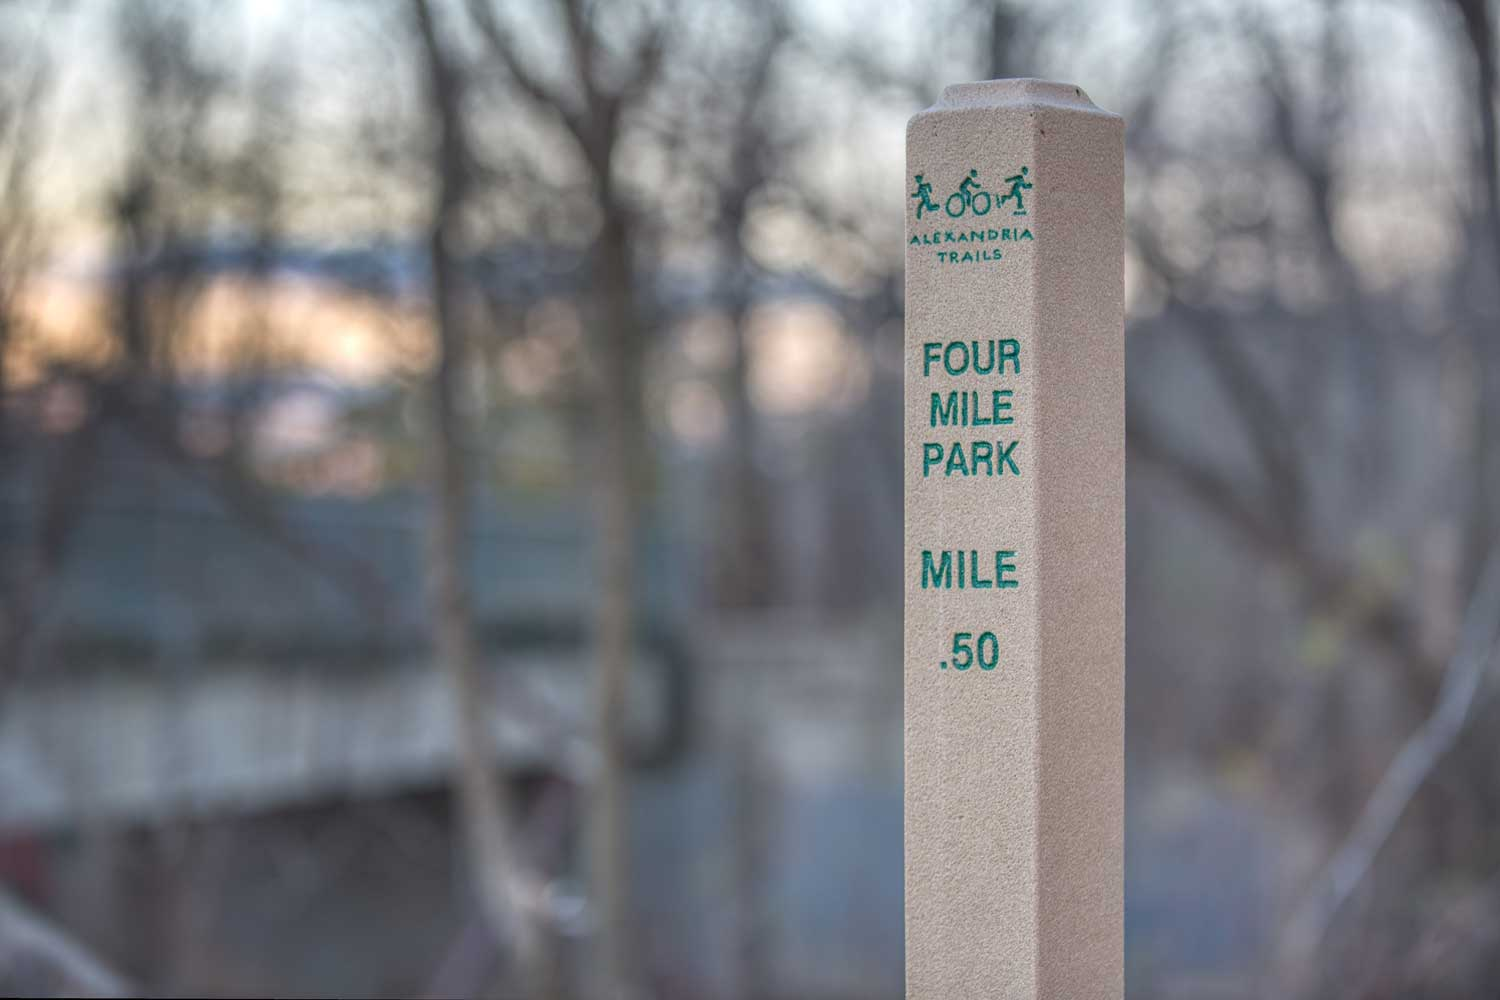 Four Mile Run Trail is 10 minutes from Barcroft Plaza Apartments